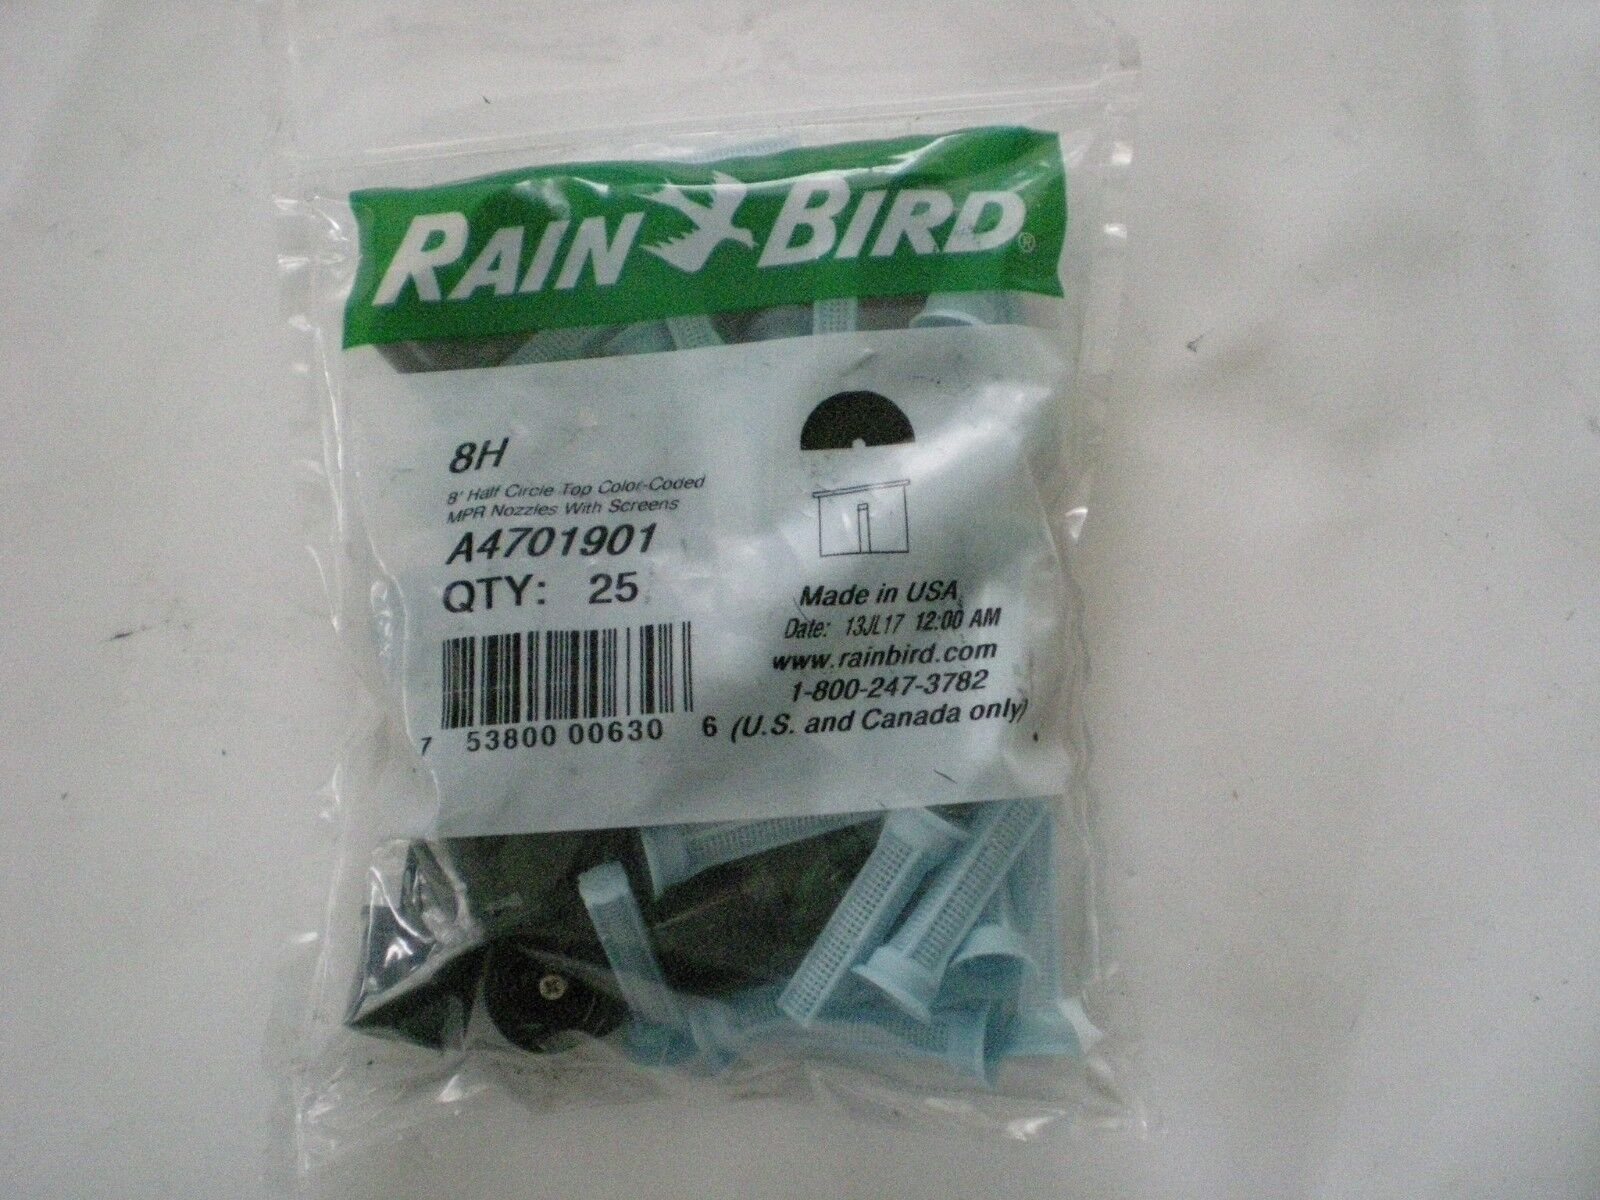 Rainbird 8H 8' Radius Half Circle Spray Nozzle